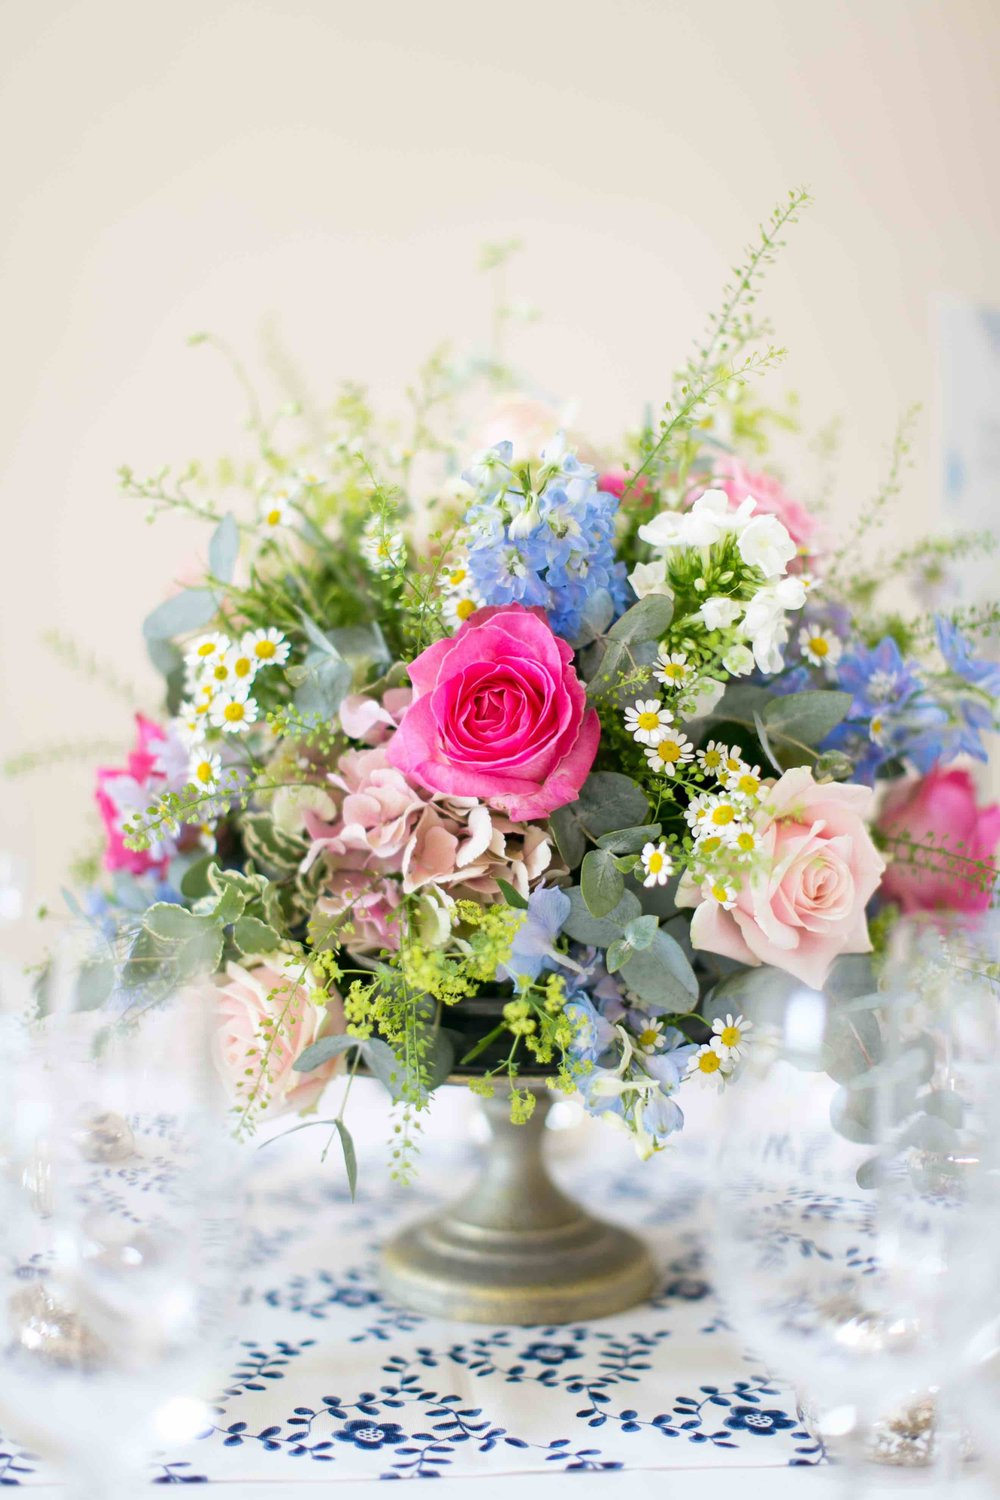 Copy of Copy of Flower centrepiece | Luxury Wedding Planner | Lamare London